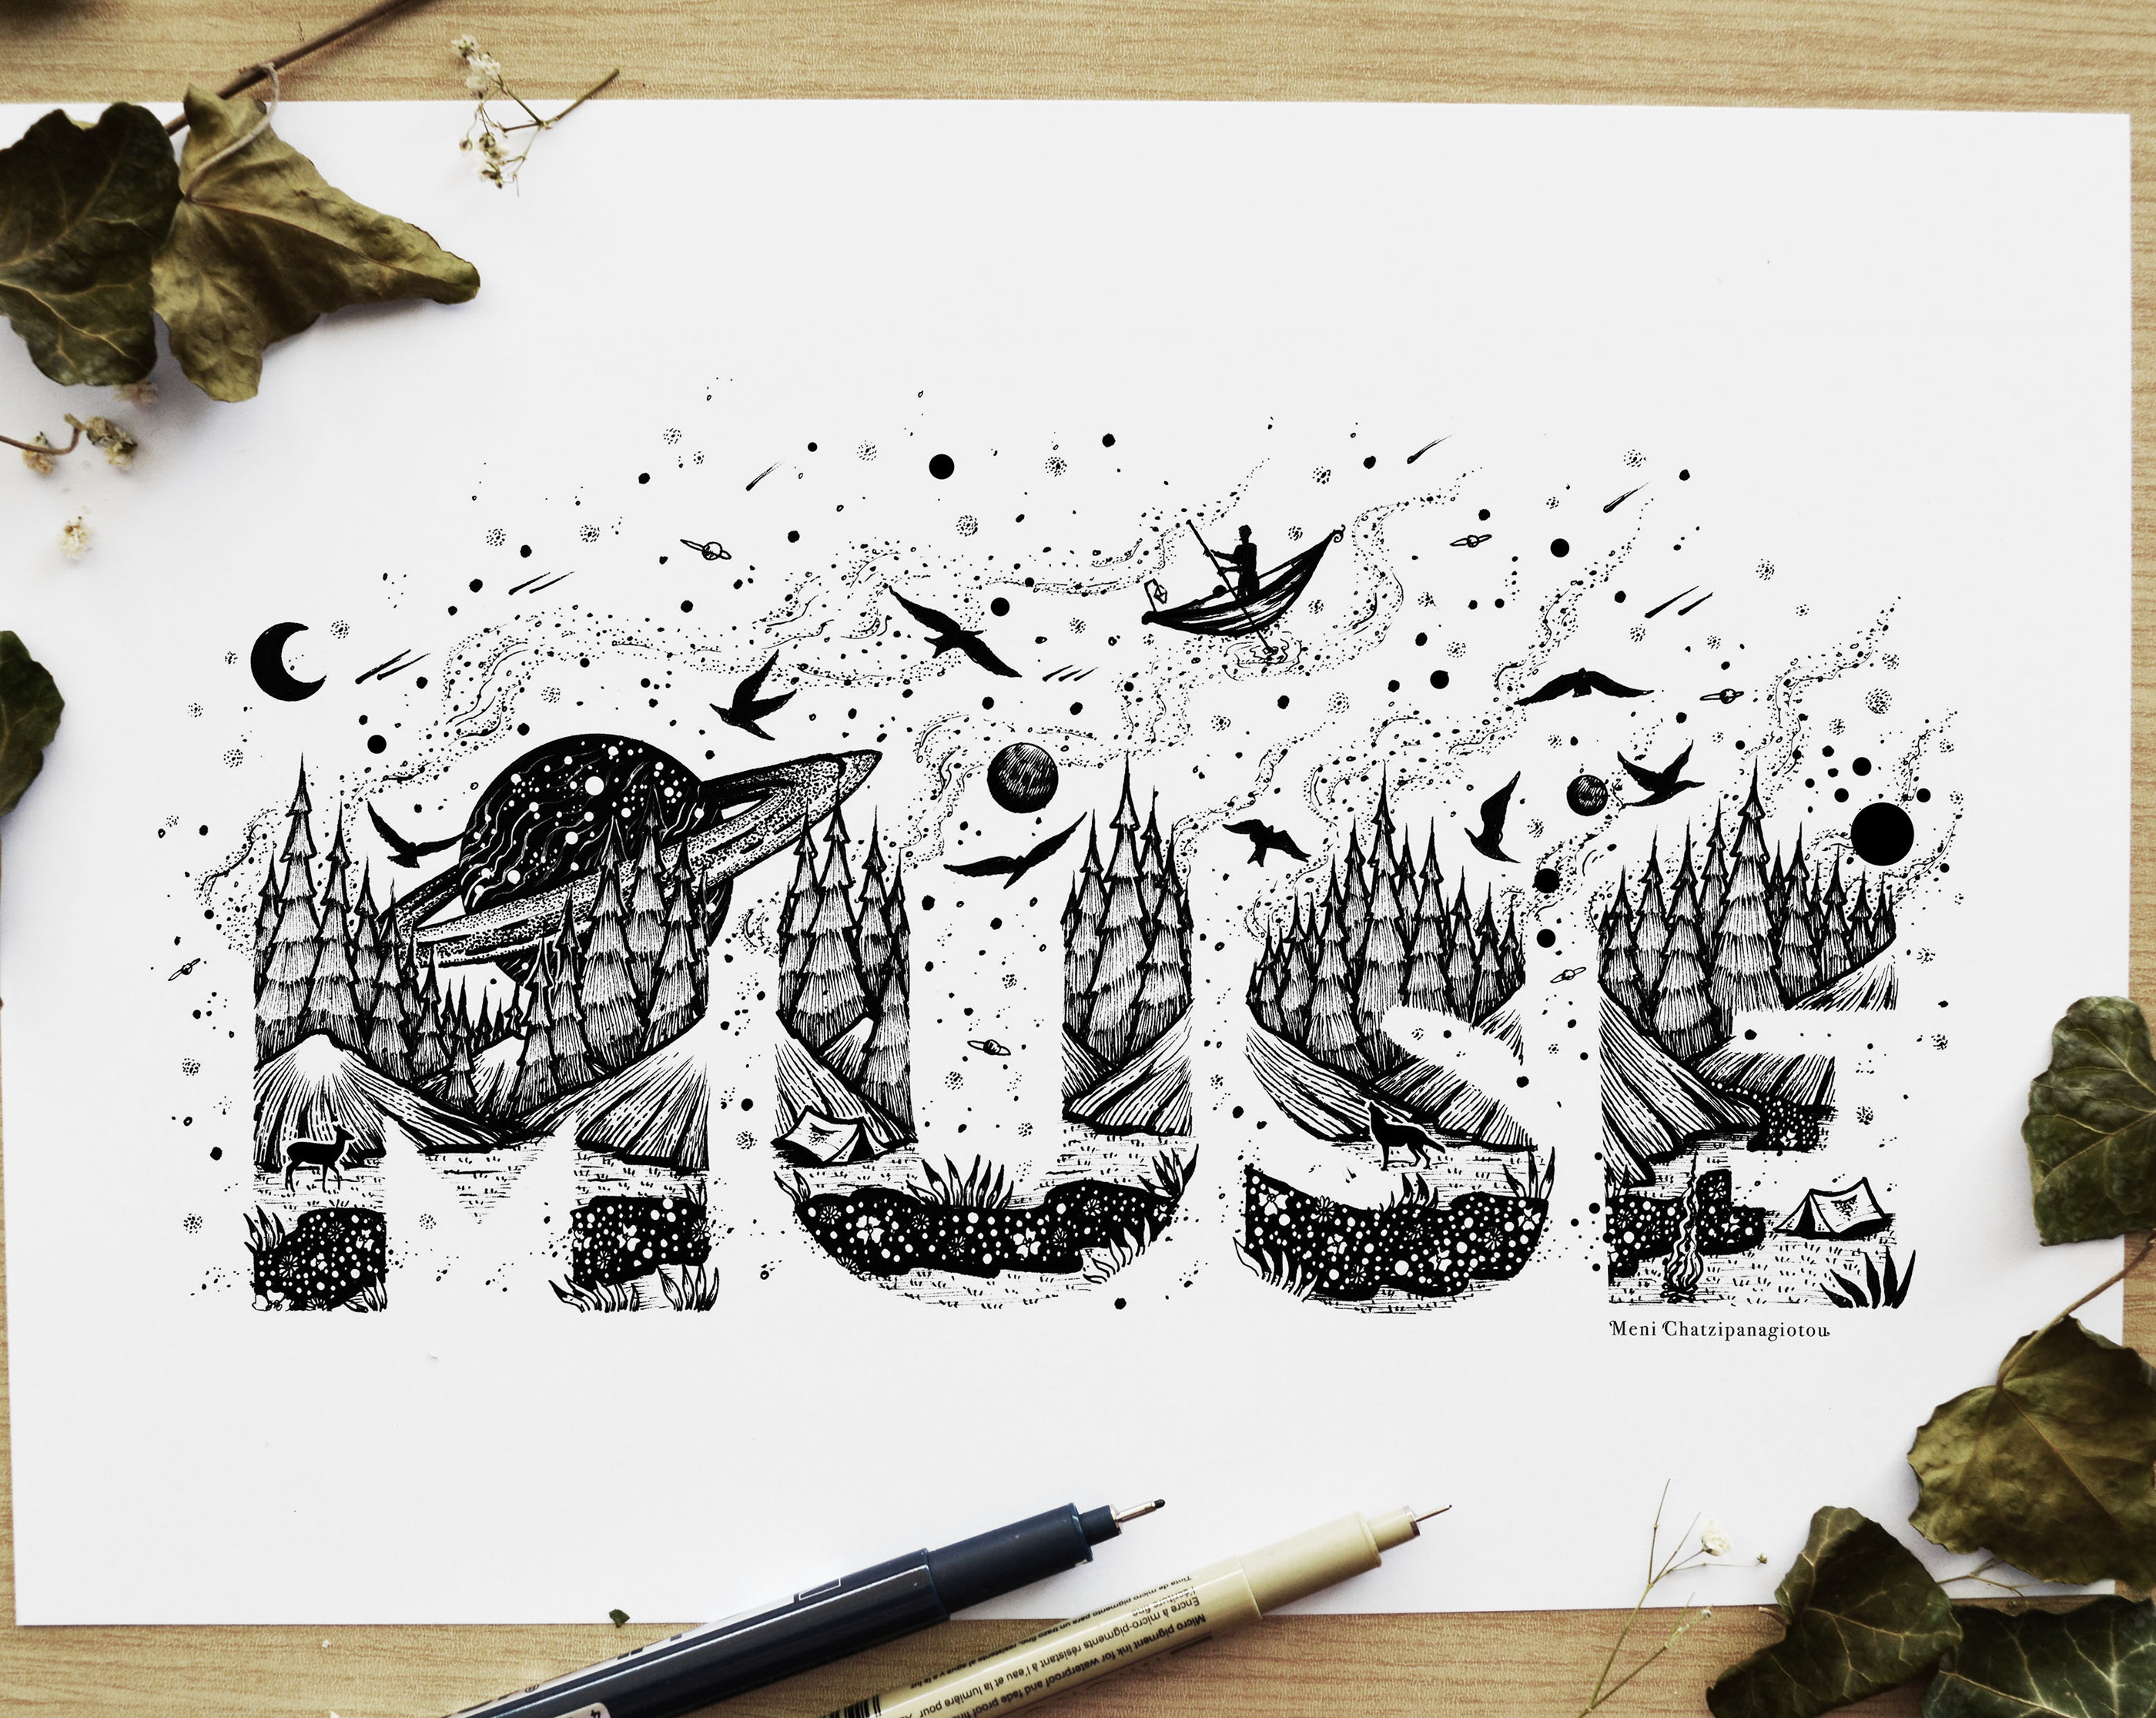 Lettering Illustrations by Meni Chatzipanagiotou